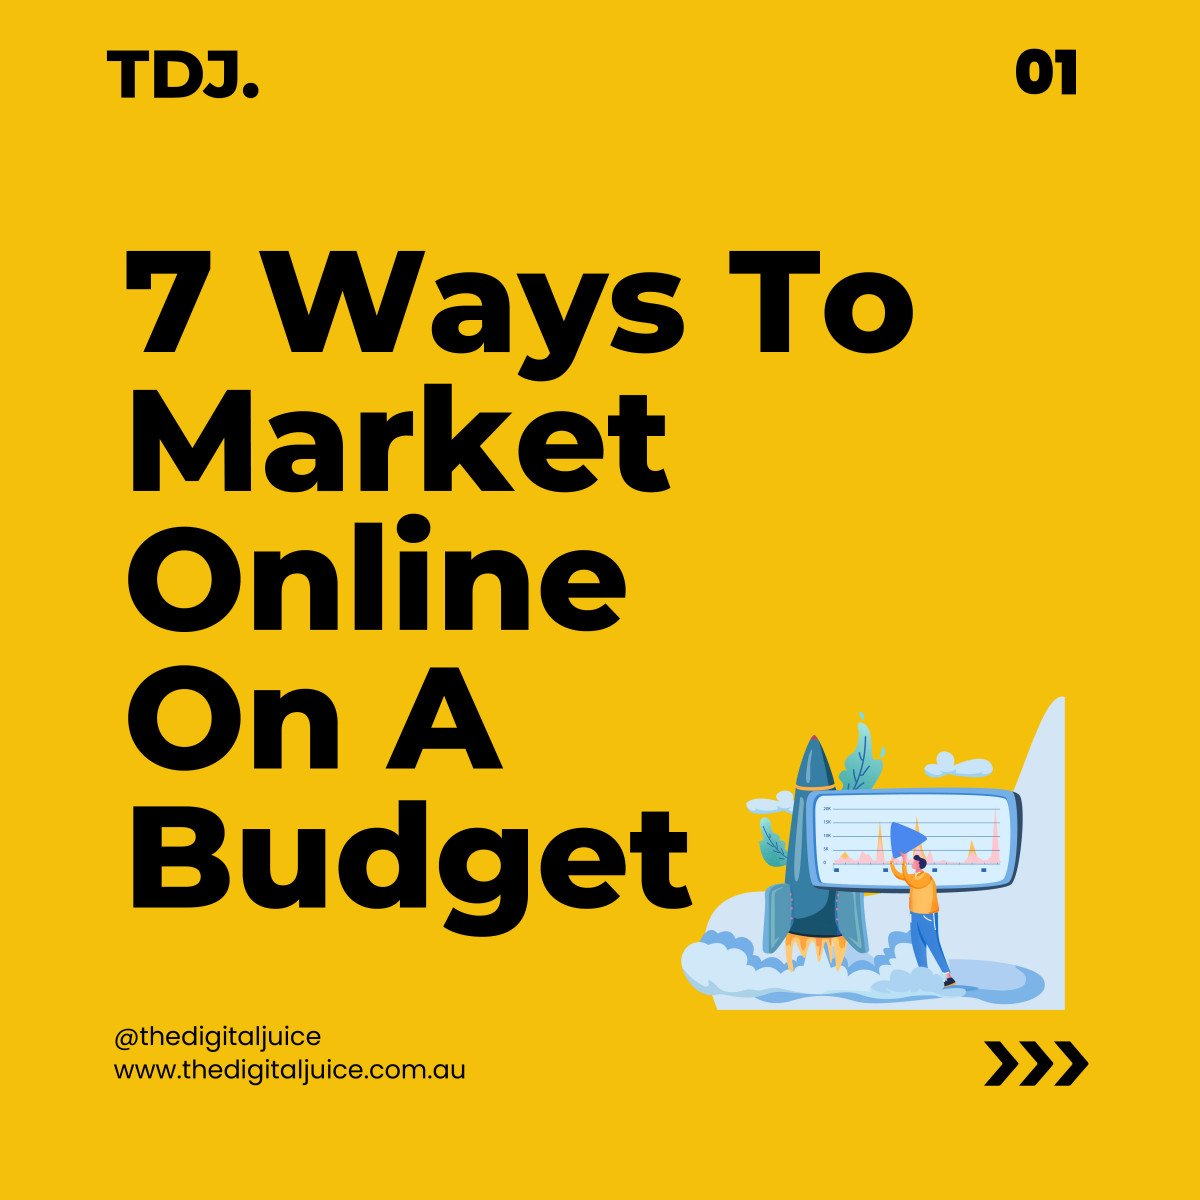 7 Ways To Market Online On A Budget